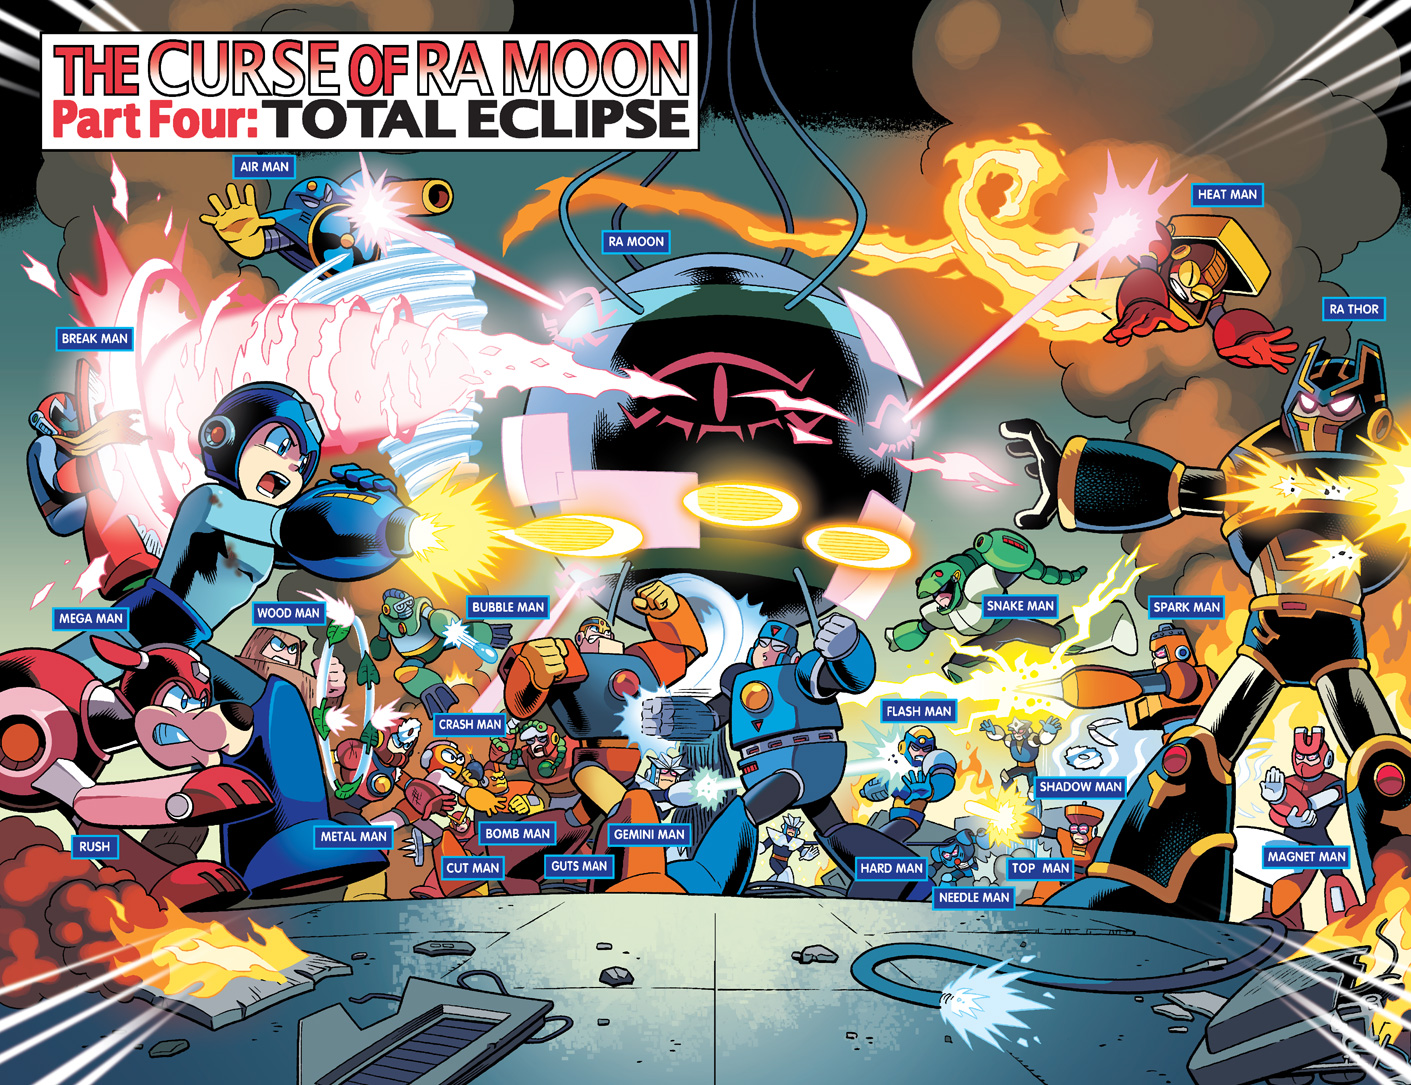 Archie comics archie comics sneak peek of the week major spoilers - Mega Man 32 Is 32 Pages In Length And Has A 2 99 Cover Price Via Archie Comics